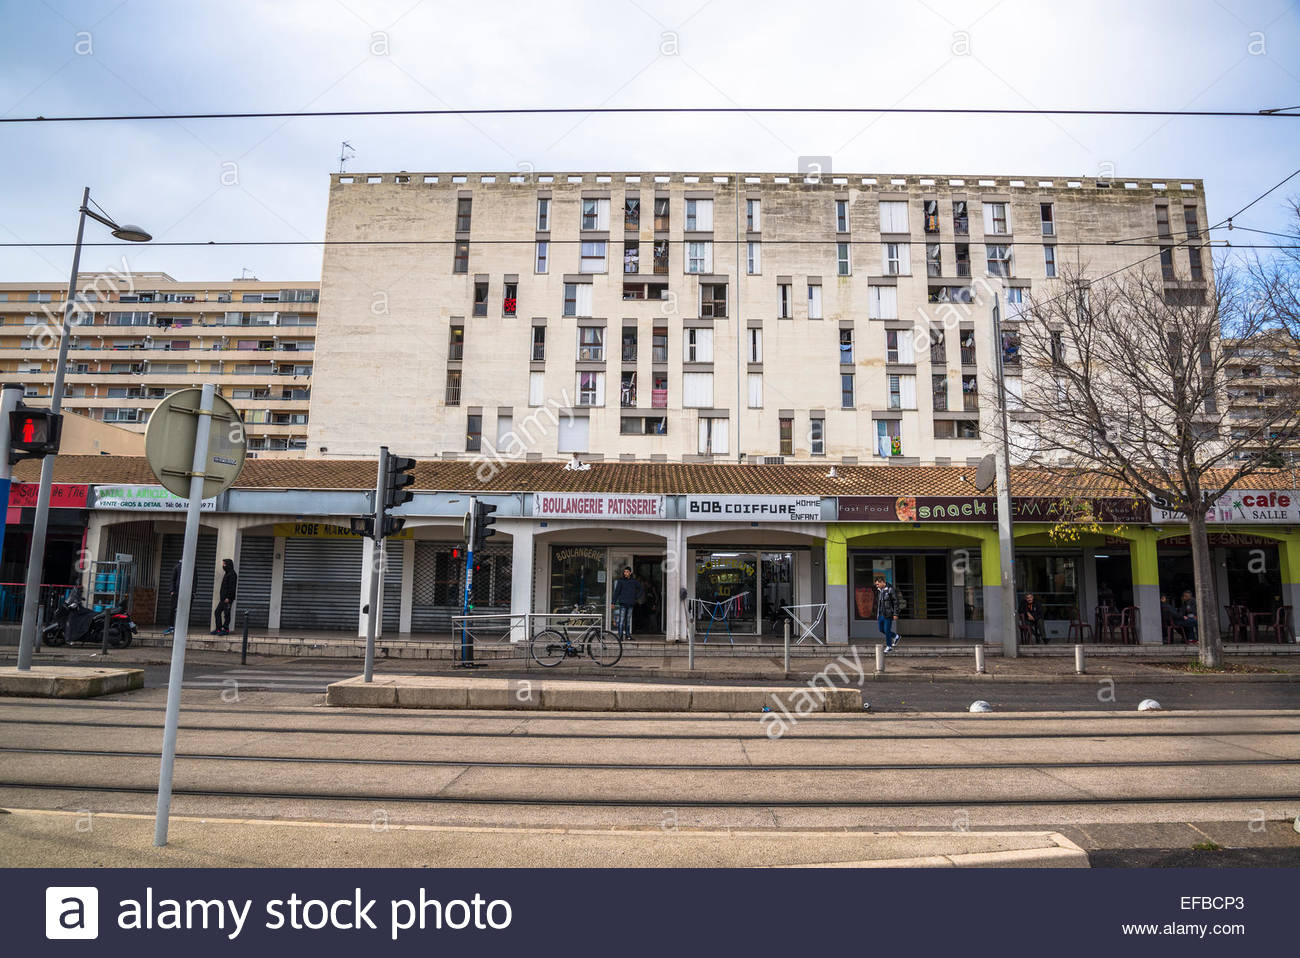 HLM public housing, Mosson area, Montpellier, France - Stock Image